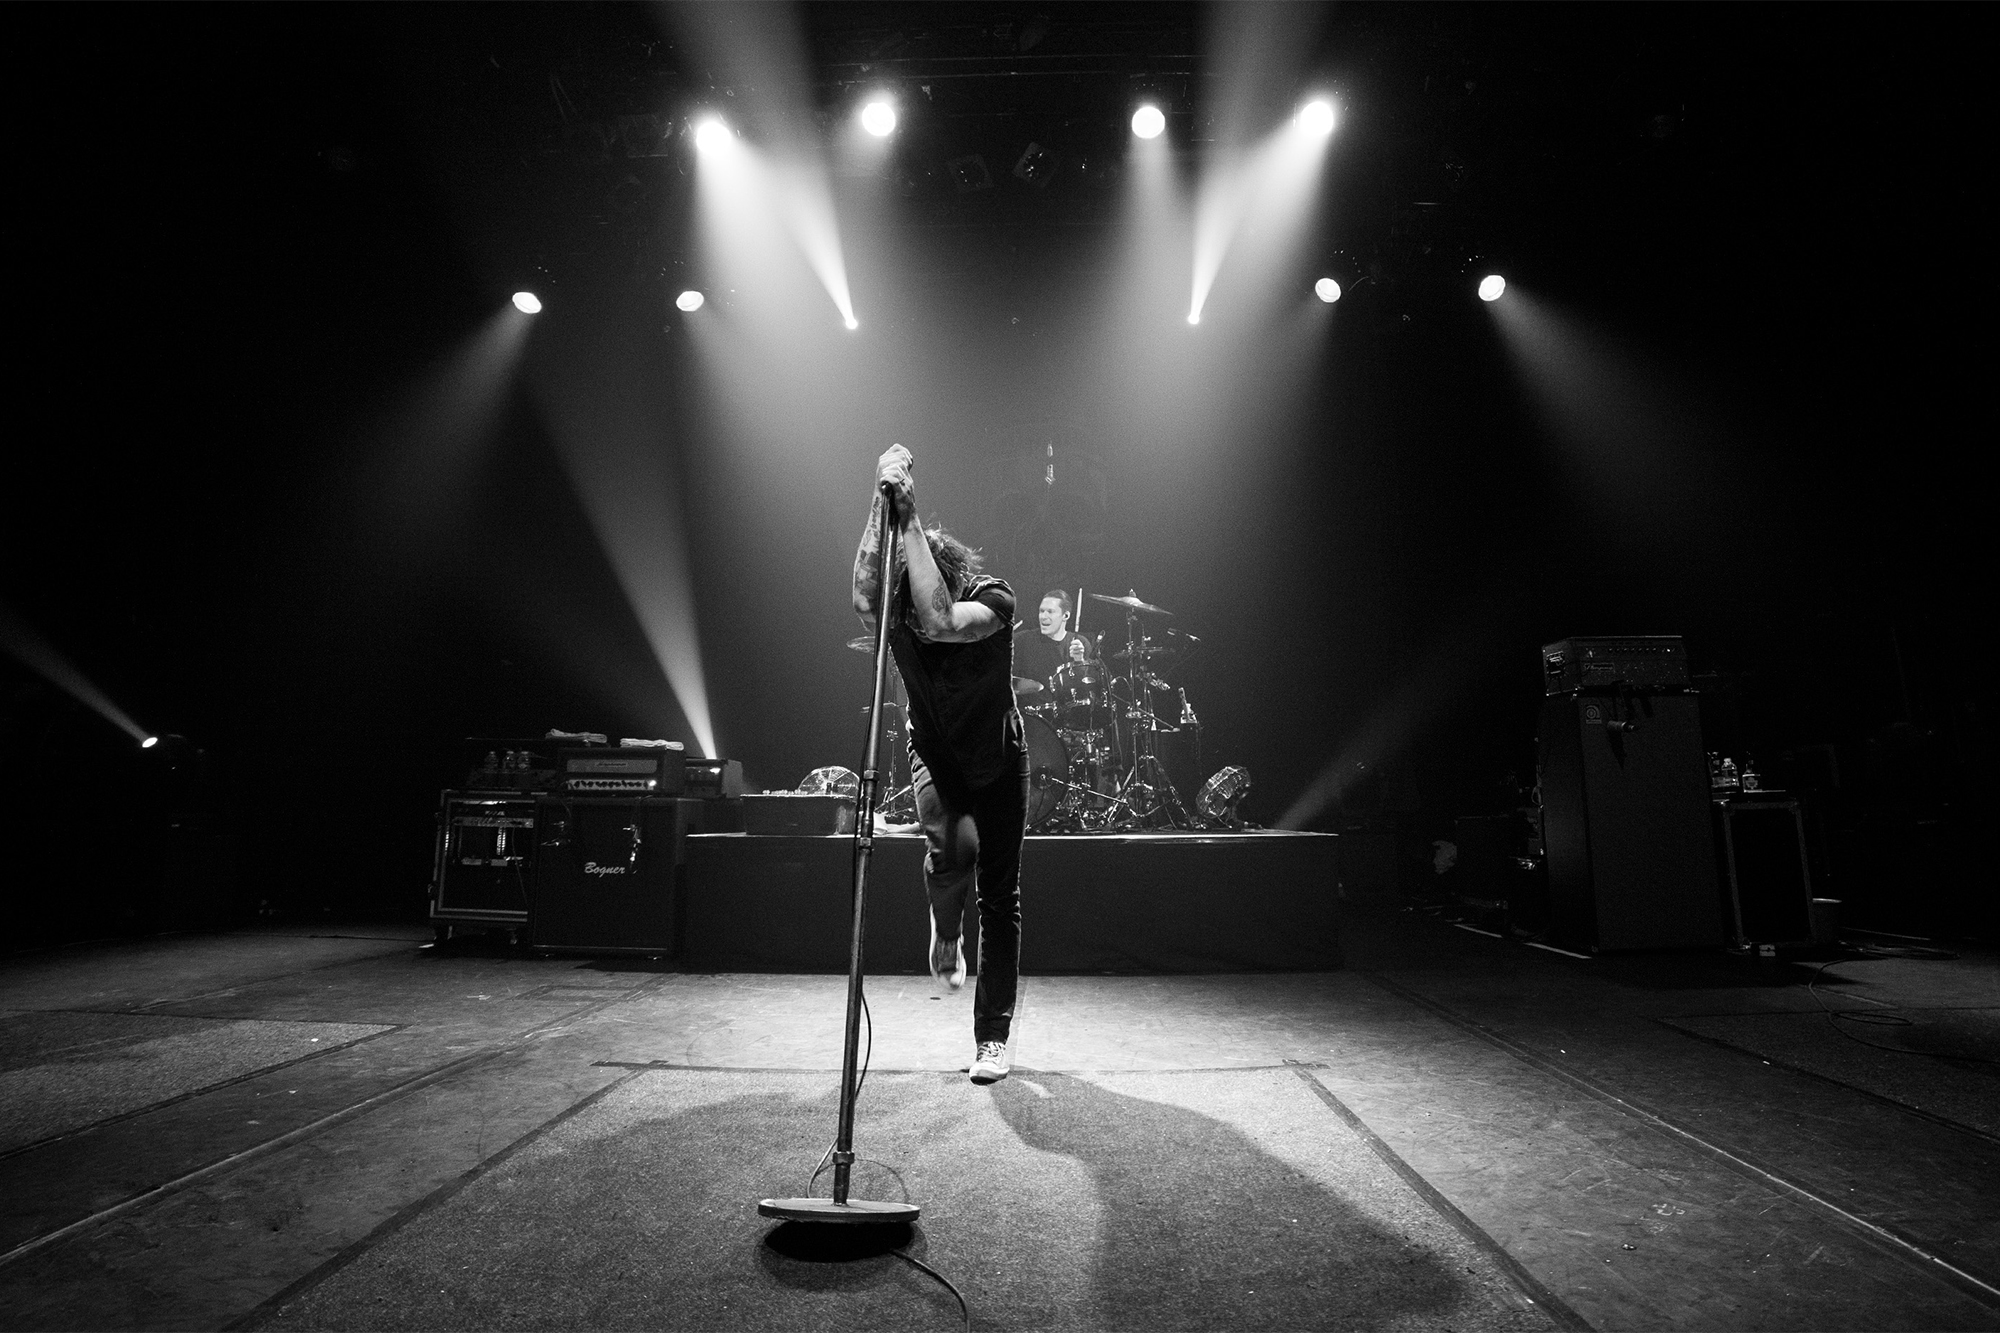 billy-talent-konzert-in-paris